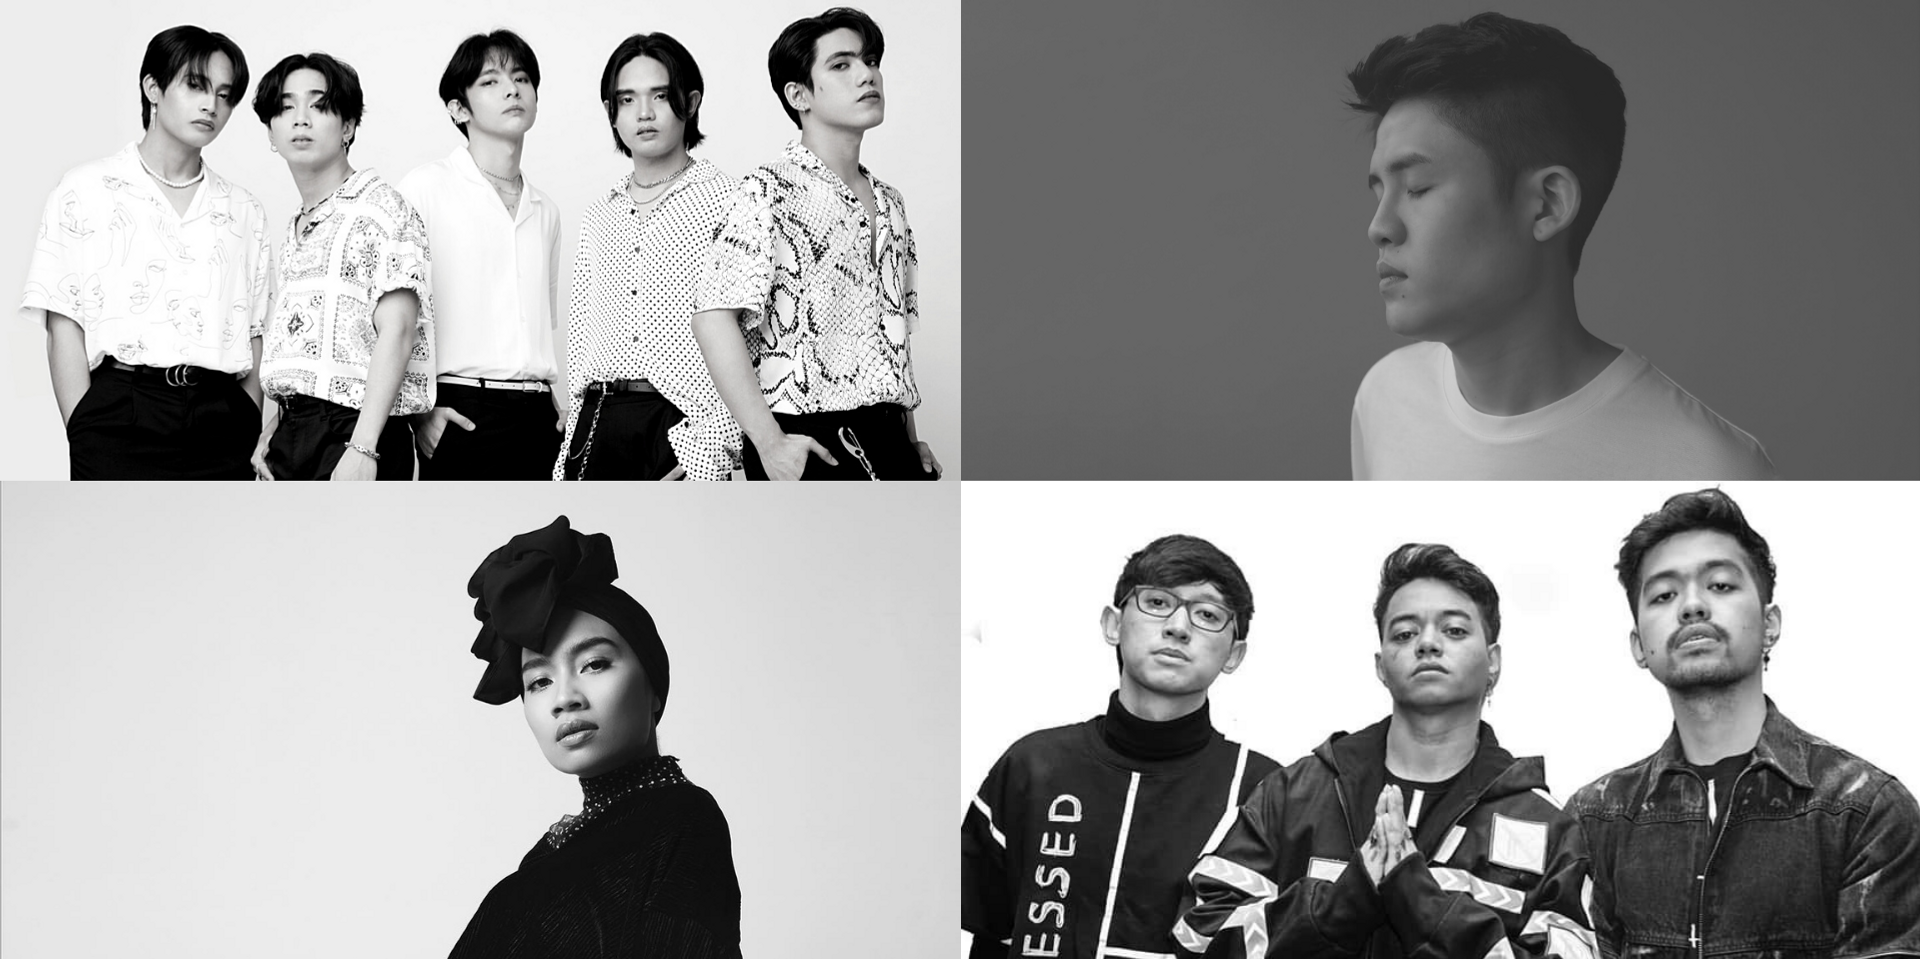 Apple Music unveils 100 best songs in Indonesia, the Philippines, Singapore, Malaysia, and Thailand – SB19, Weird Genius, Gentle Bones, Yuna, and more